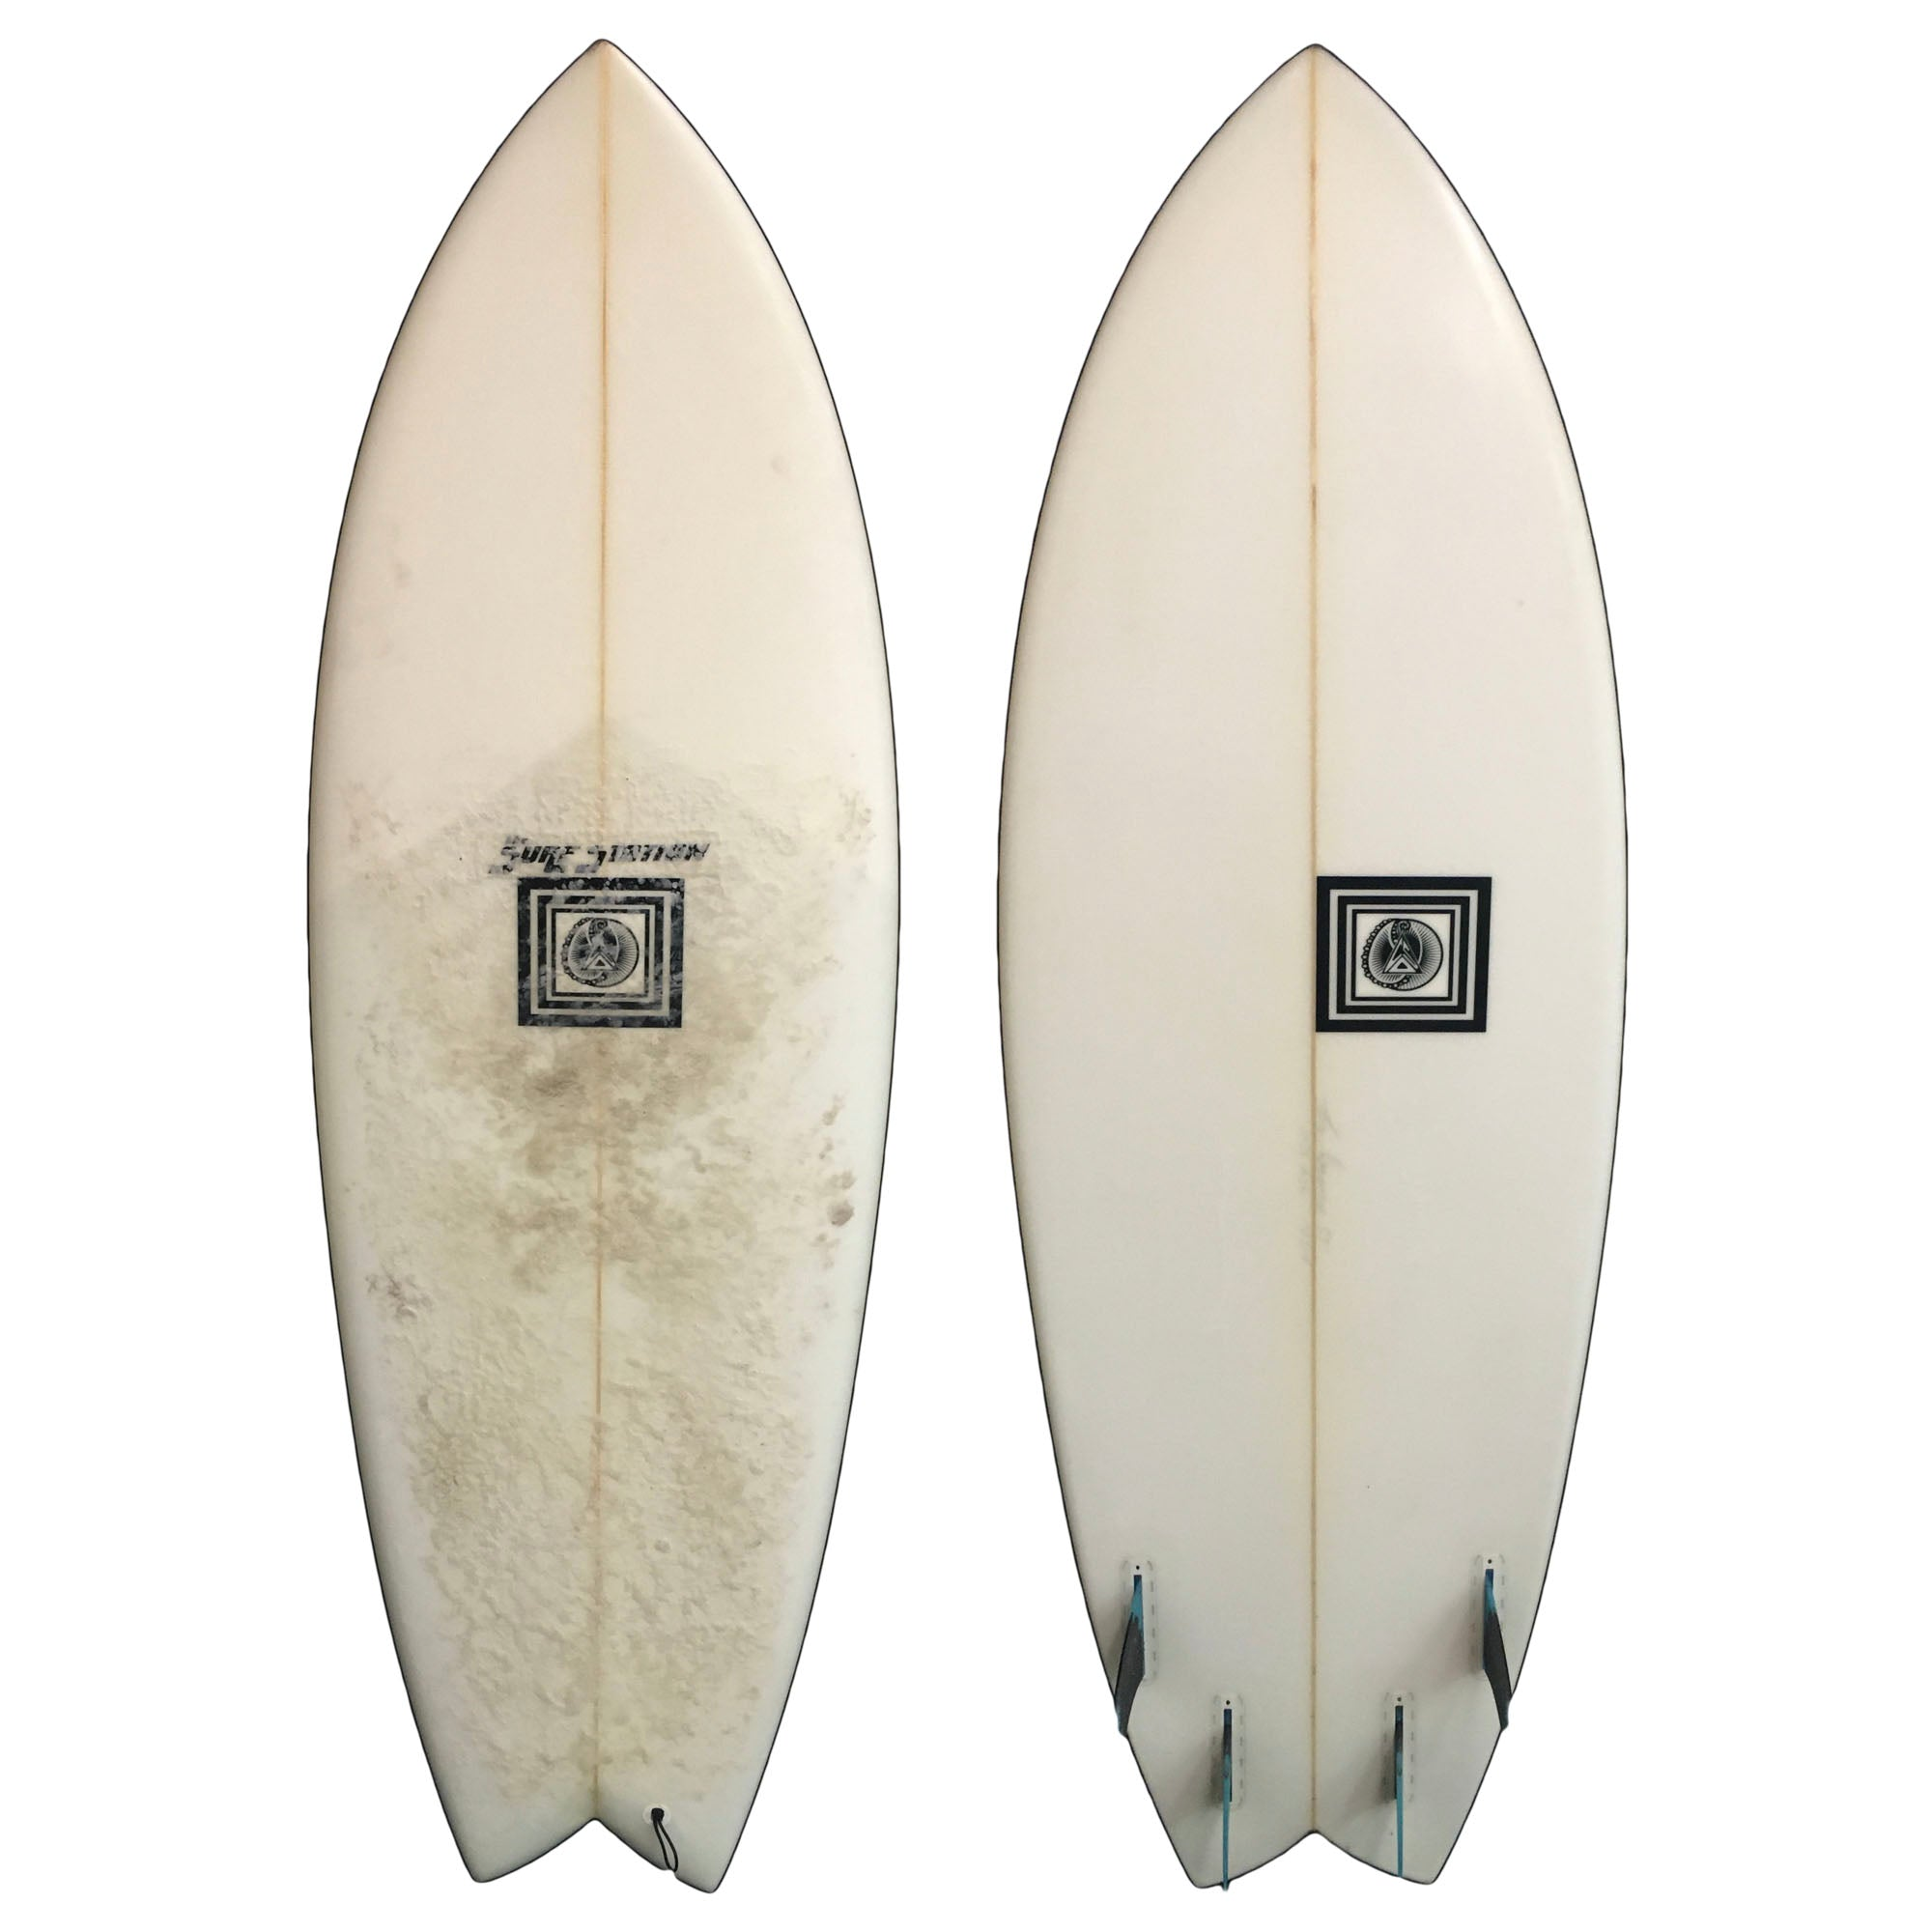 COS Quad Fish 5'5 Used Surfboard